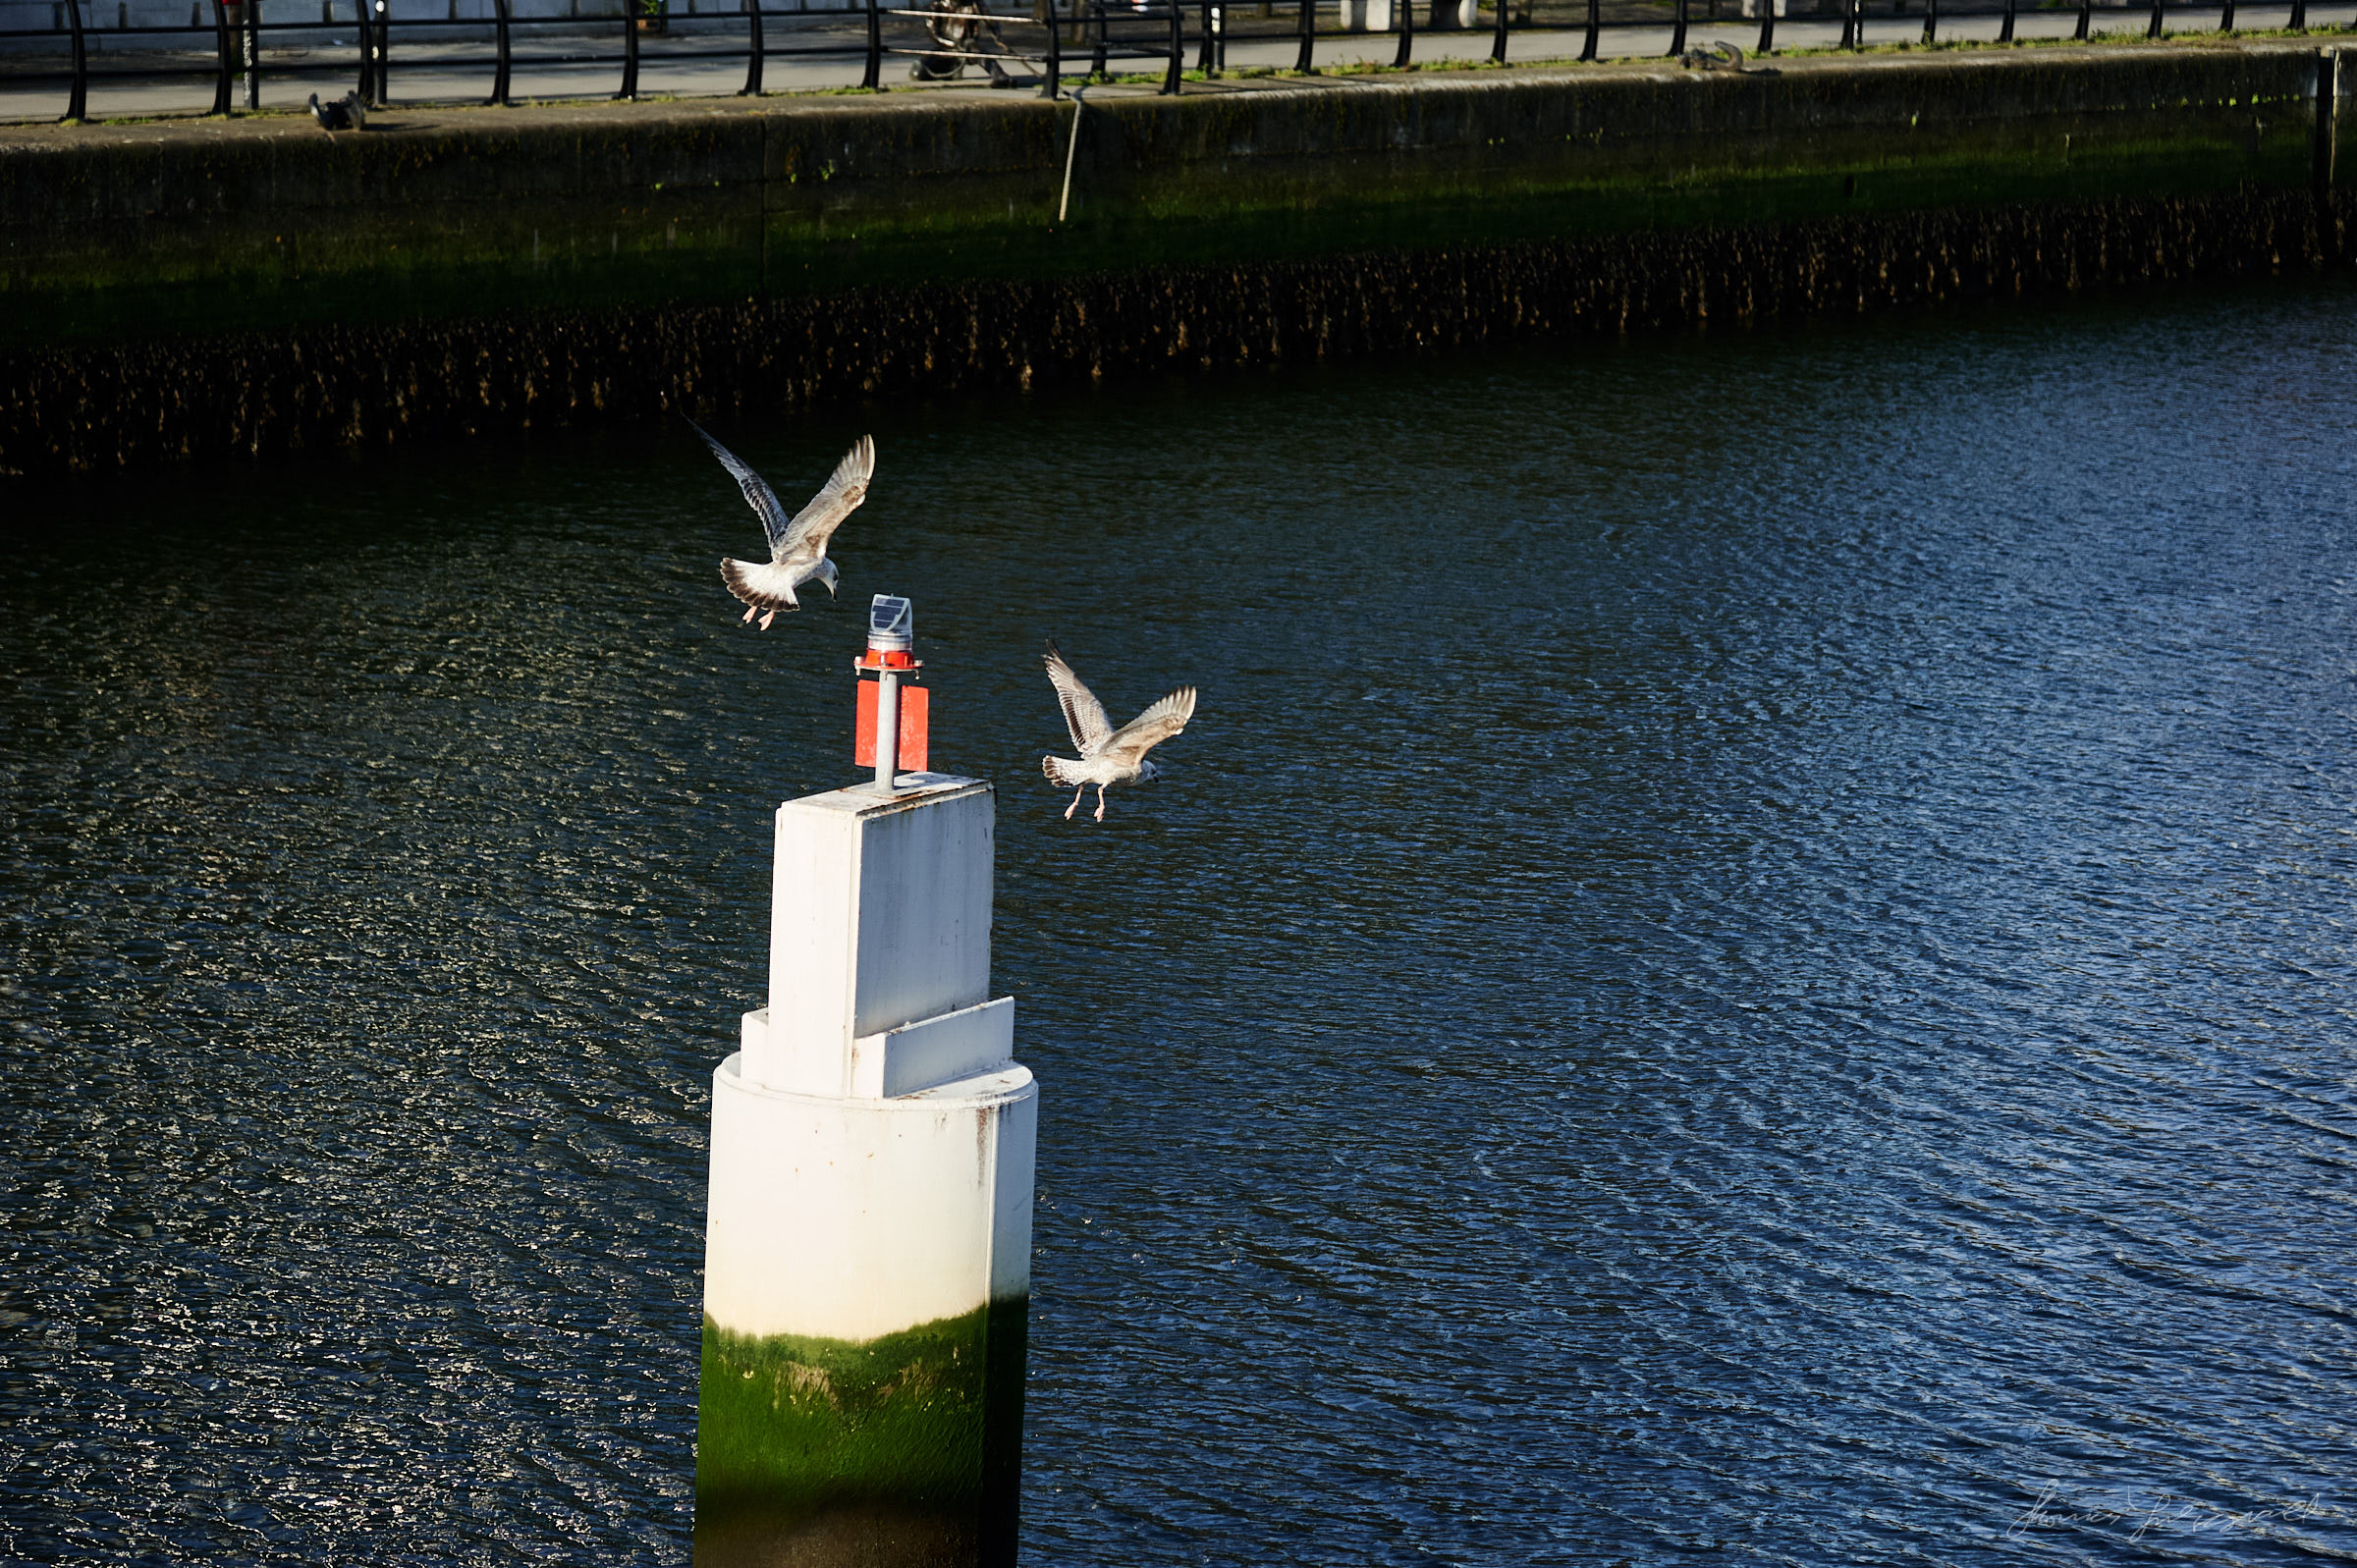 Seagulls on a post in the river